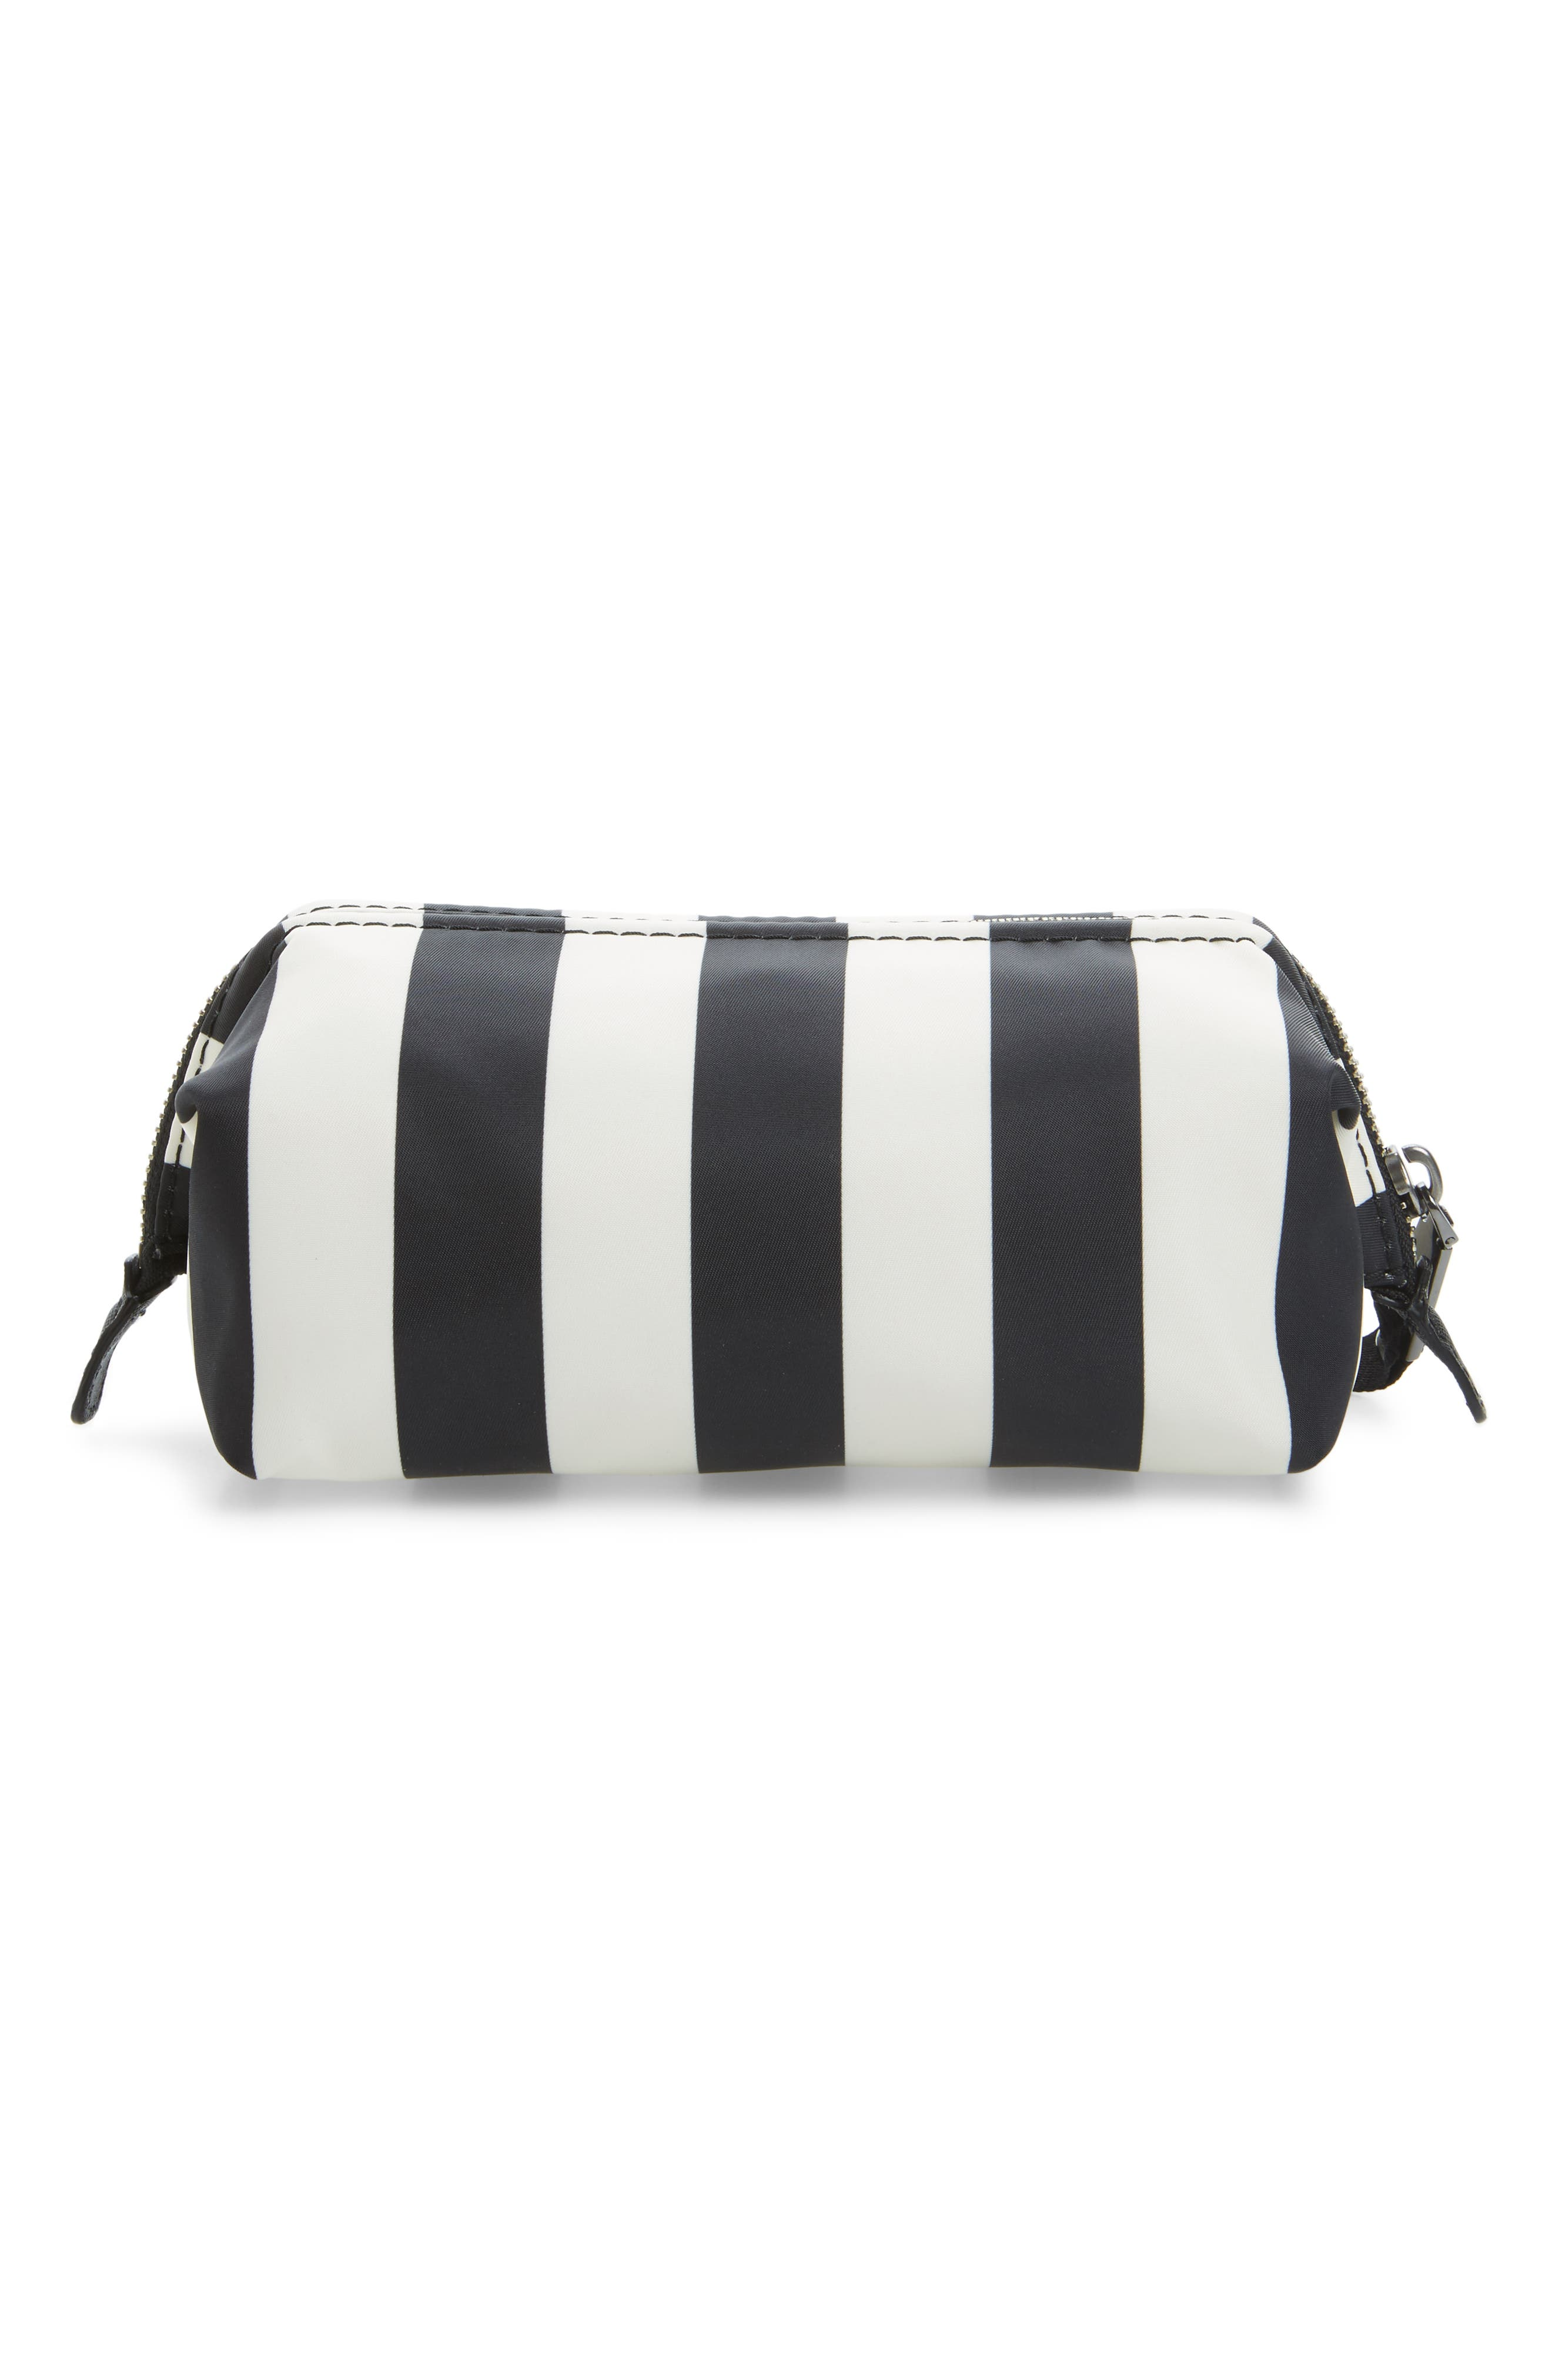 Stripes Trooper Cosmetics Bag,                             Alternate thumbnail 2, color,                             001